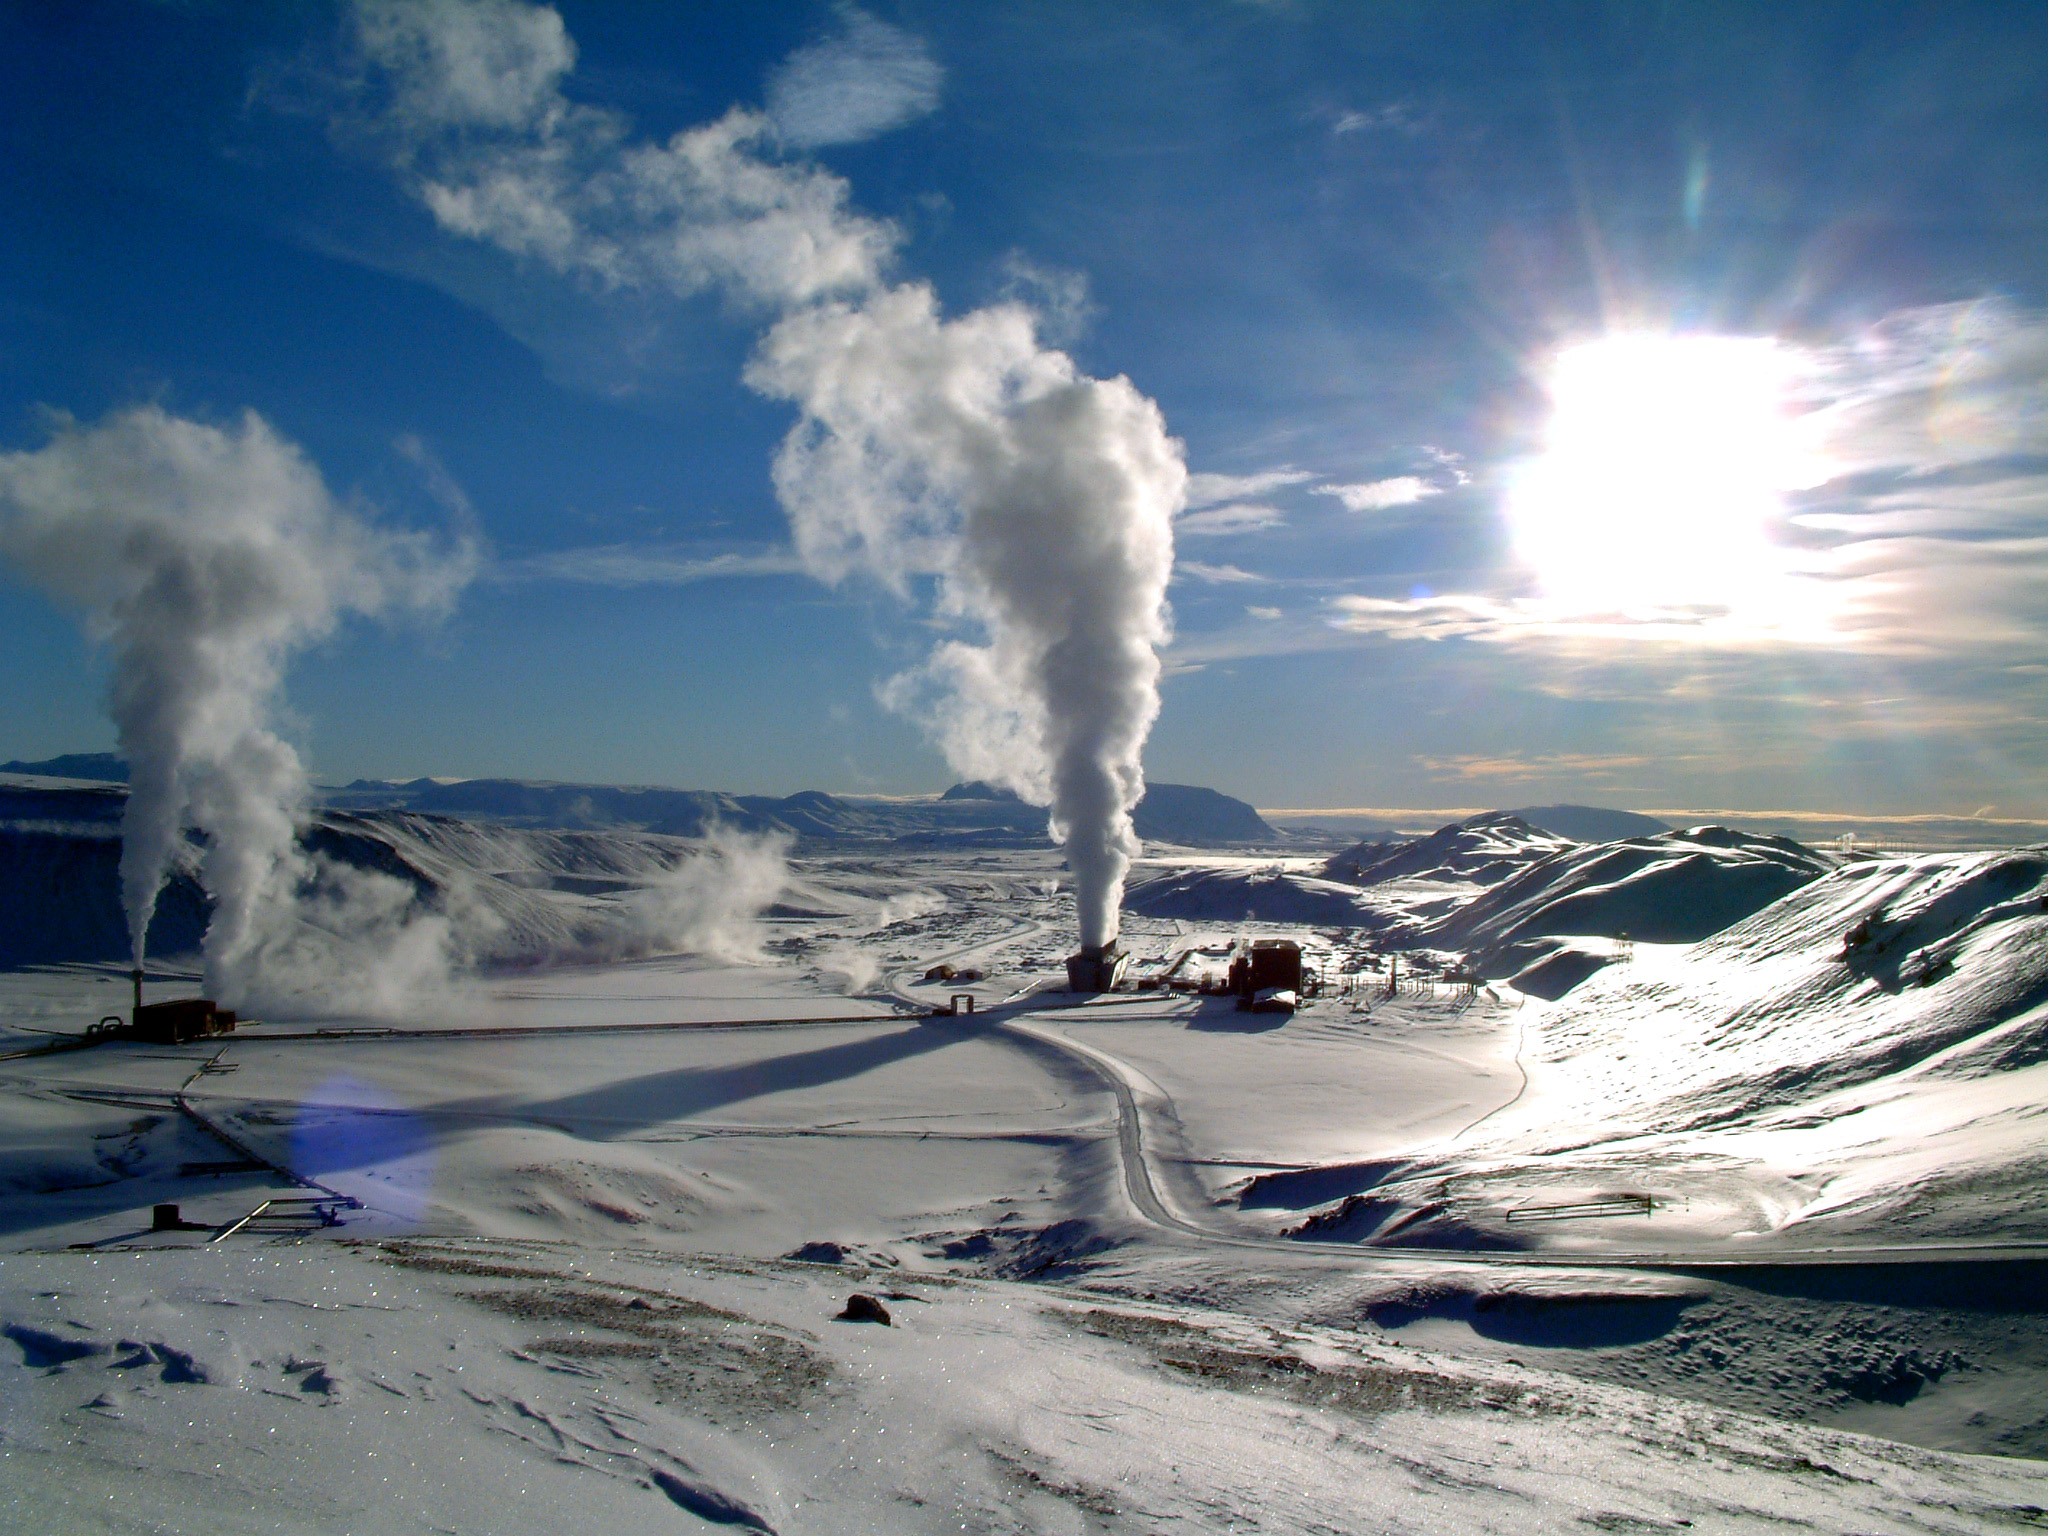 File:Krafla geothermal power station wiki.jpg - Wikimedia Commons